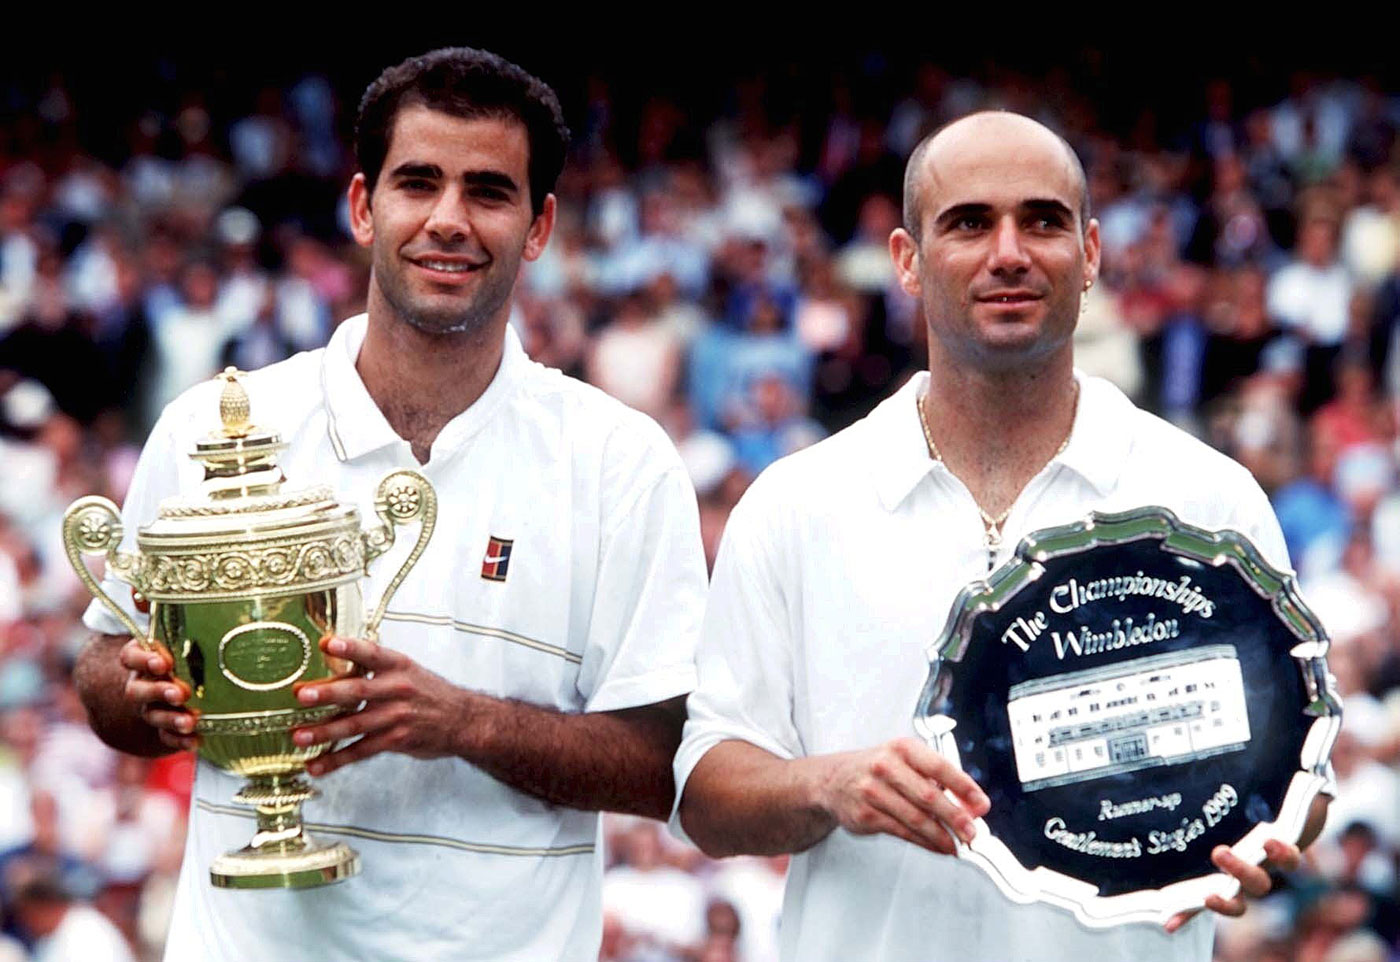 Three sets of vintage Sampras in the 1999 Wimbledon final. Would you call that boring?